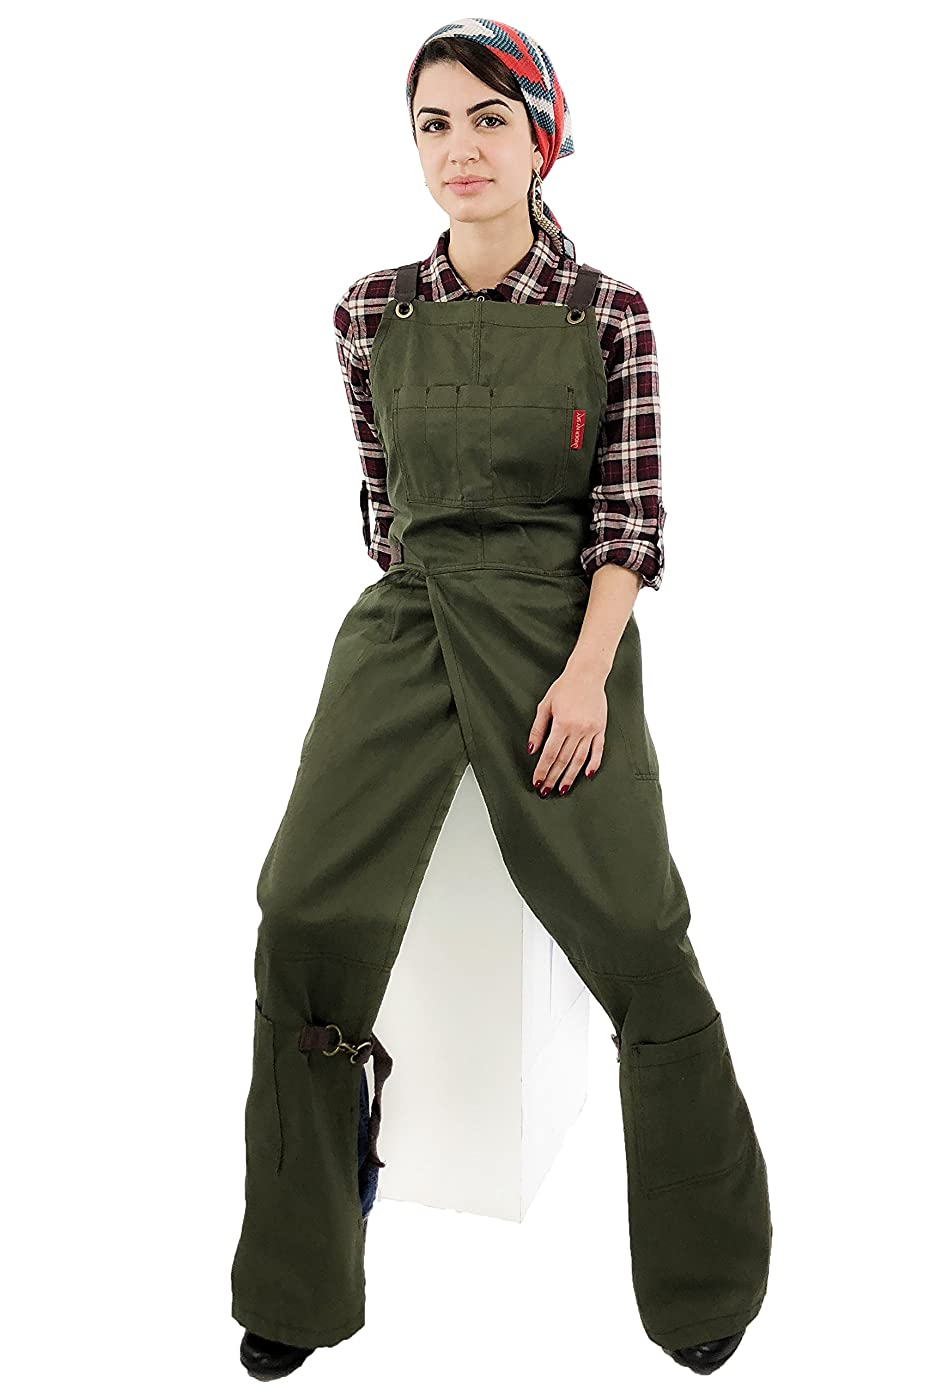 Under NY Sky Pottery Moss Green Apron – Full Coverage Cross-Back, Durable Twill, Leather Reinforcement and Overlapping Split-Leg, Adjustable for Men and Women – Pottery Artist, Mechanic, Tattoo Apron